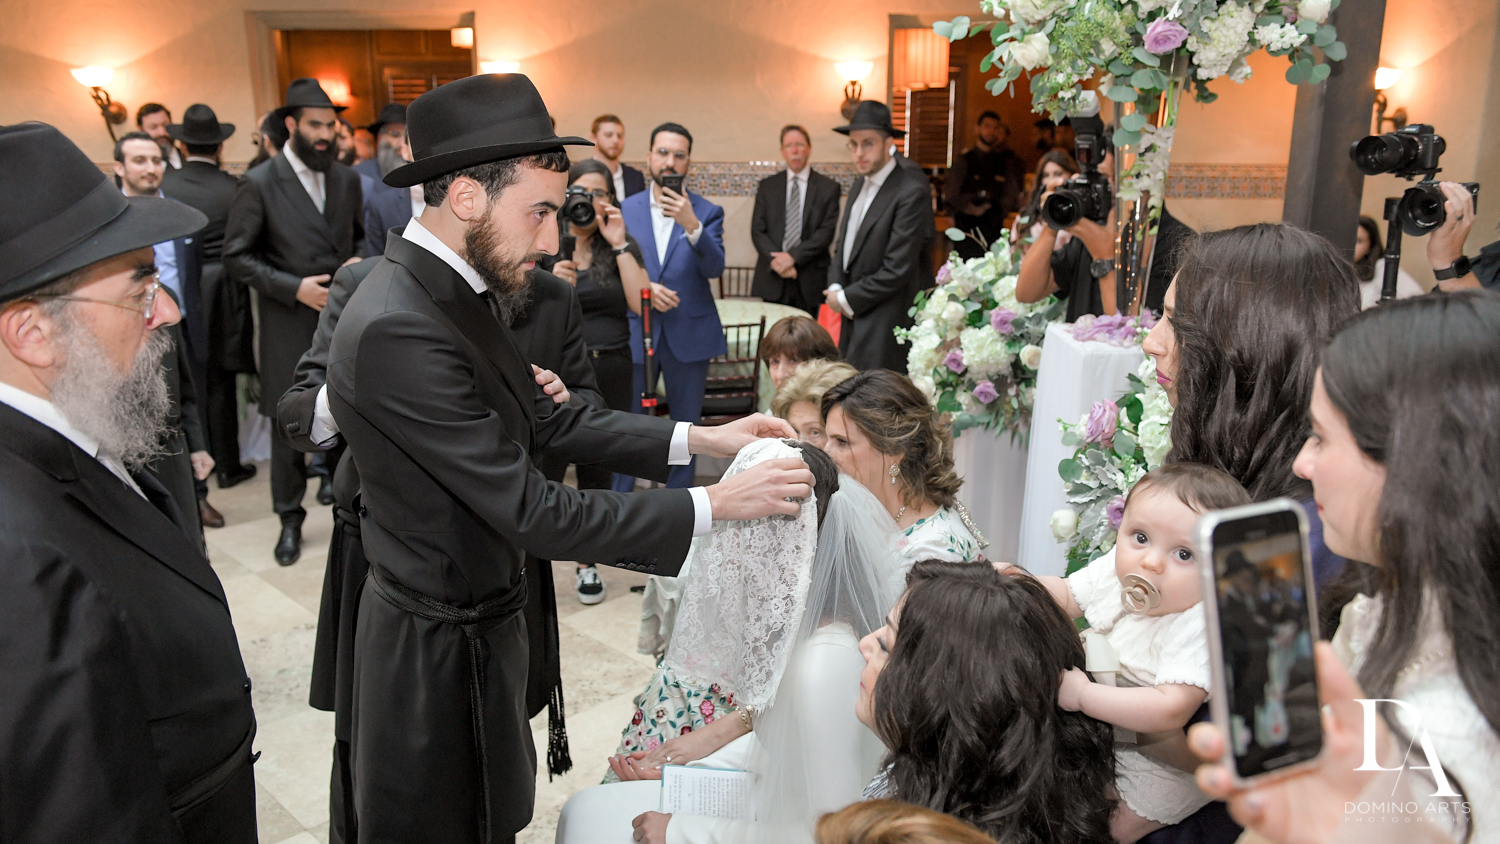 veiling bride at bedeken at Hasidic Jewish Wedding at The Addison in Boca Raton by Domino Arts Photography